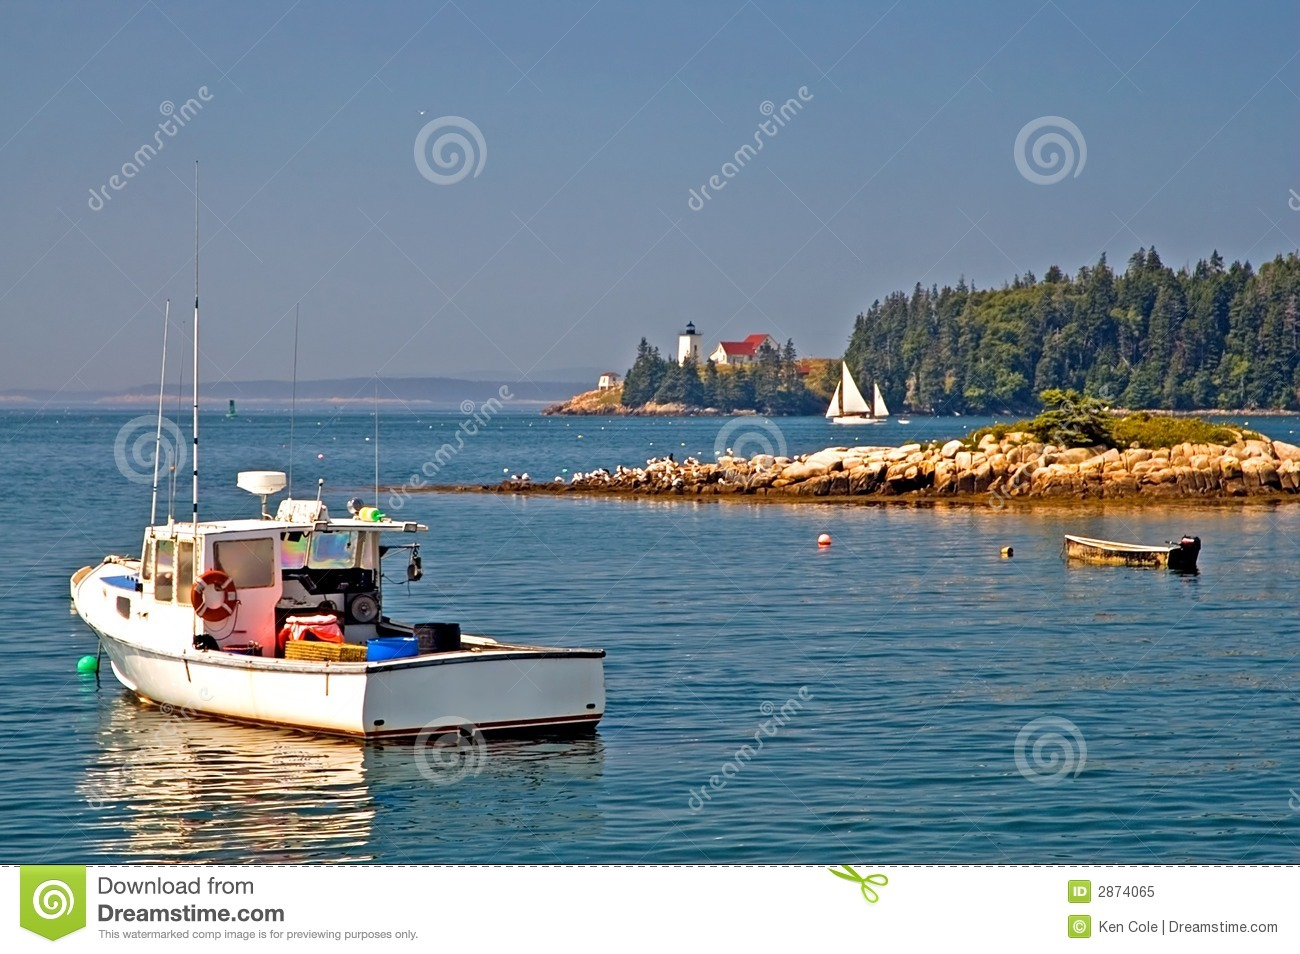 Maine scenic coastline stock image. Image of coast, quietness - 2874065